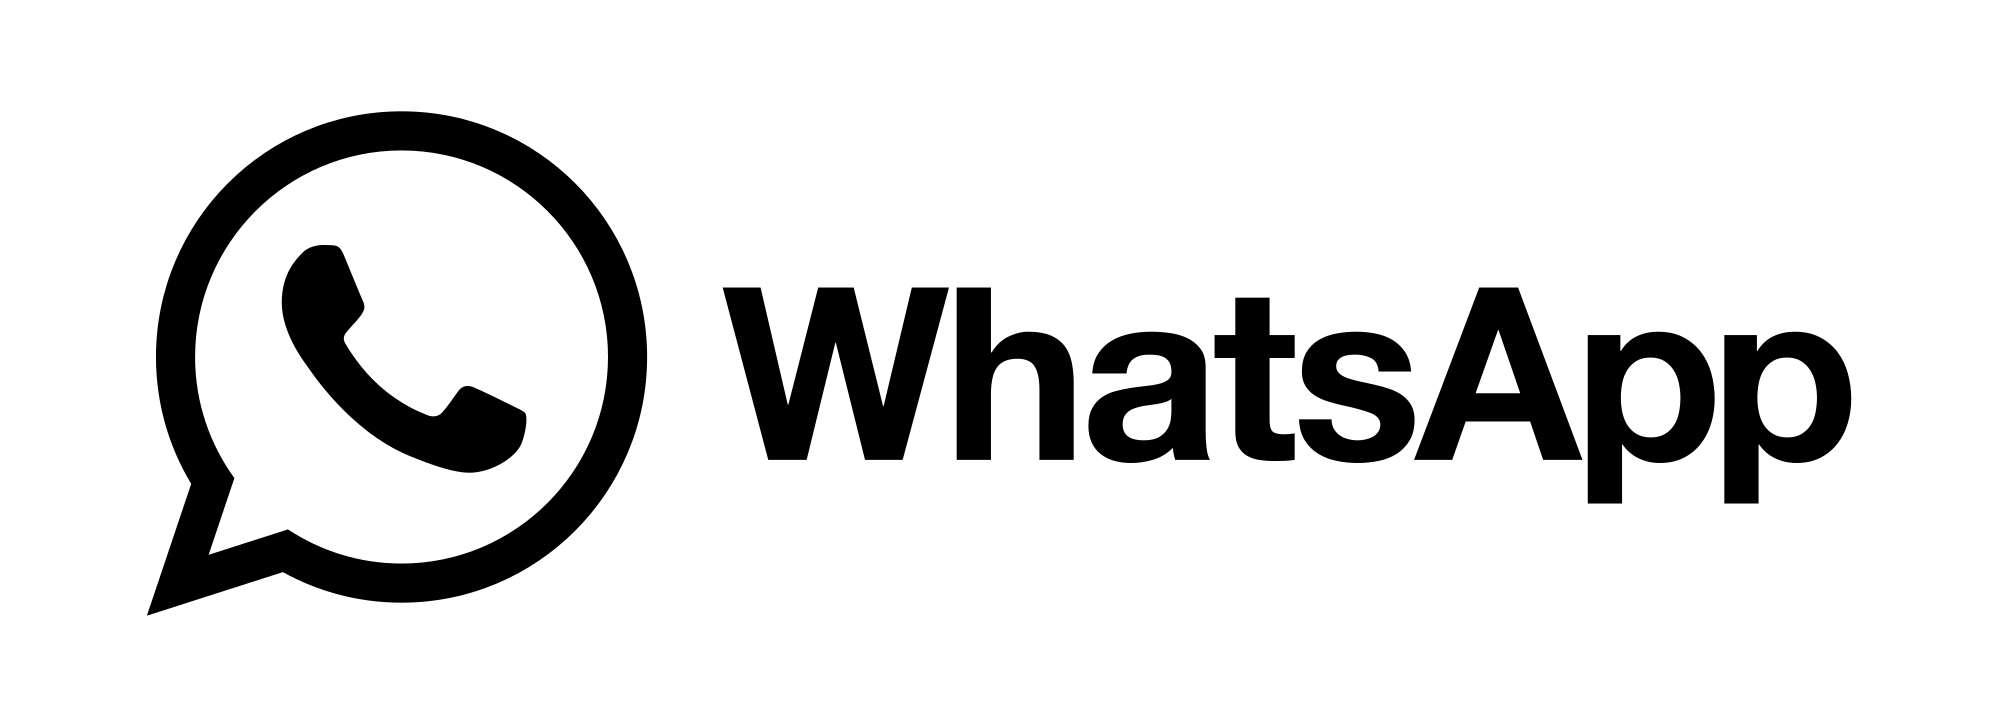 Whatsapp Logo and Brand Icons PNG.